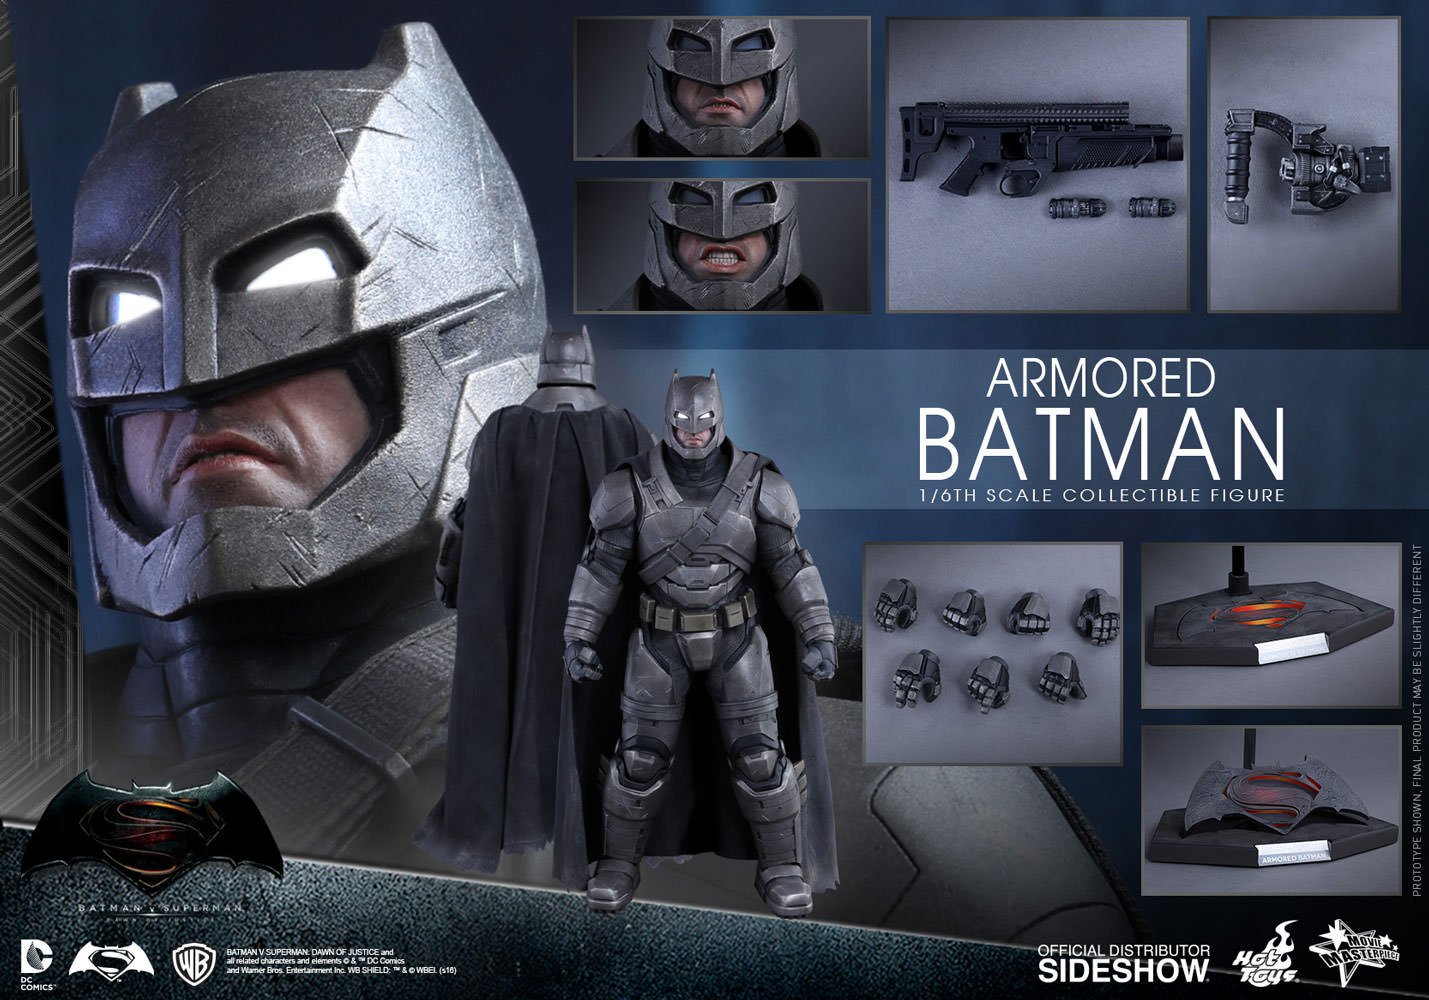 Hot Toys Armored Batman Sixth Scale Figure xbotf7fv